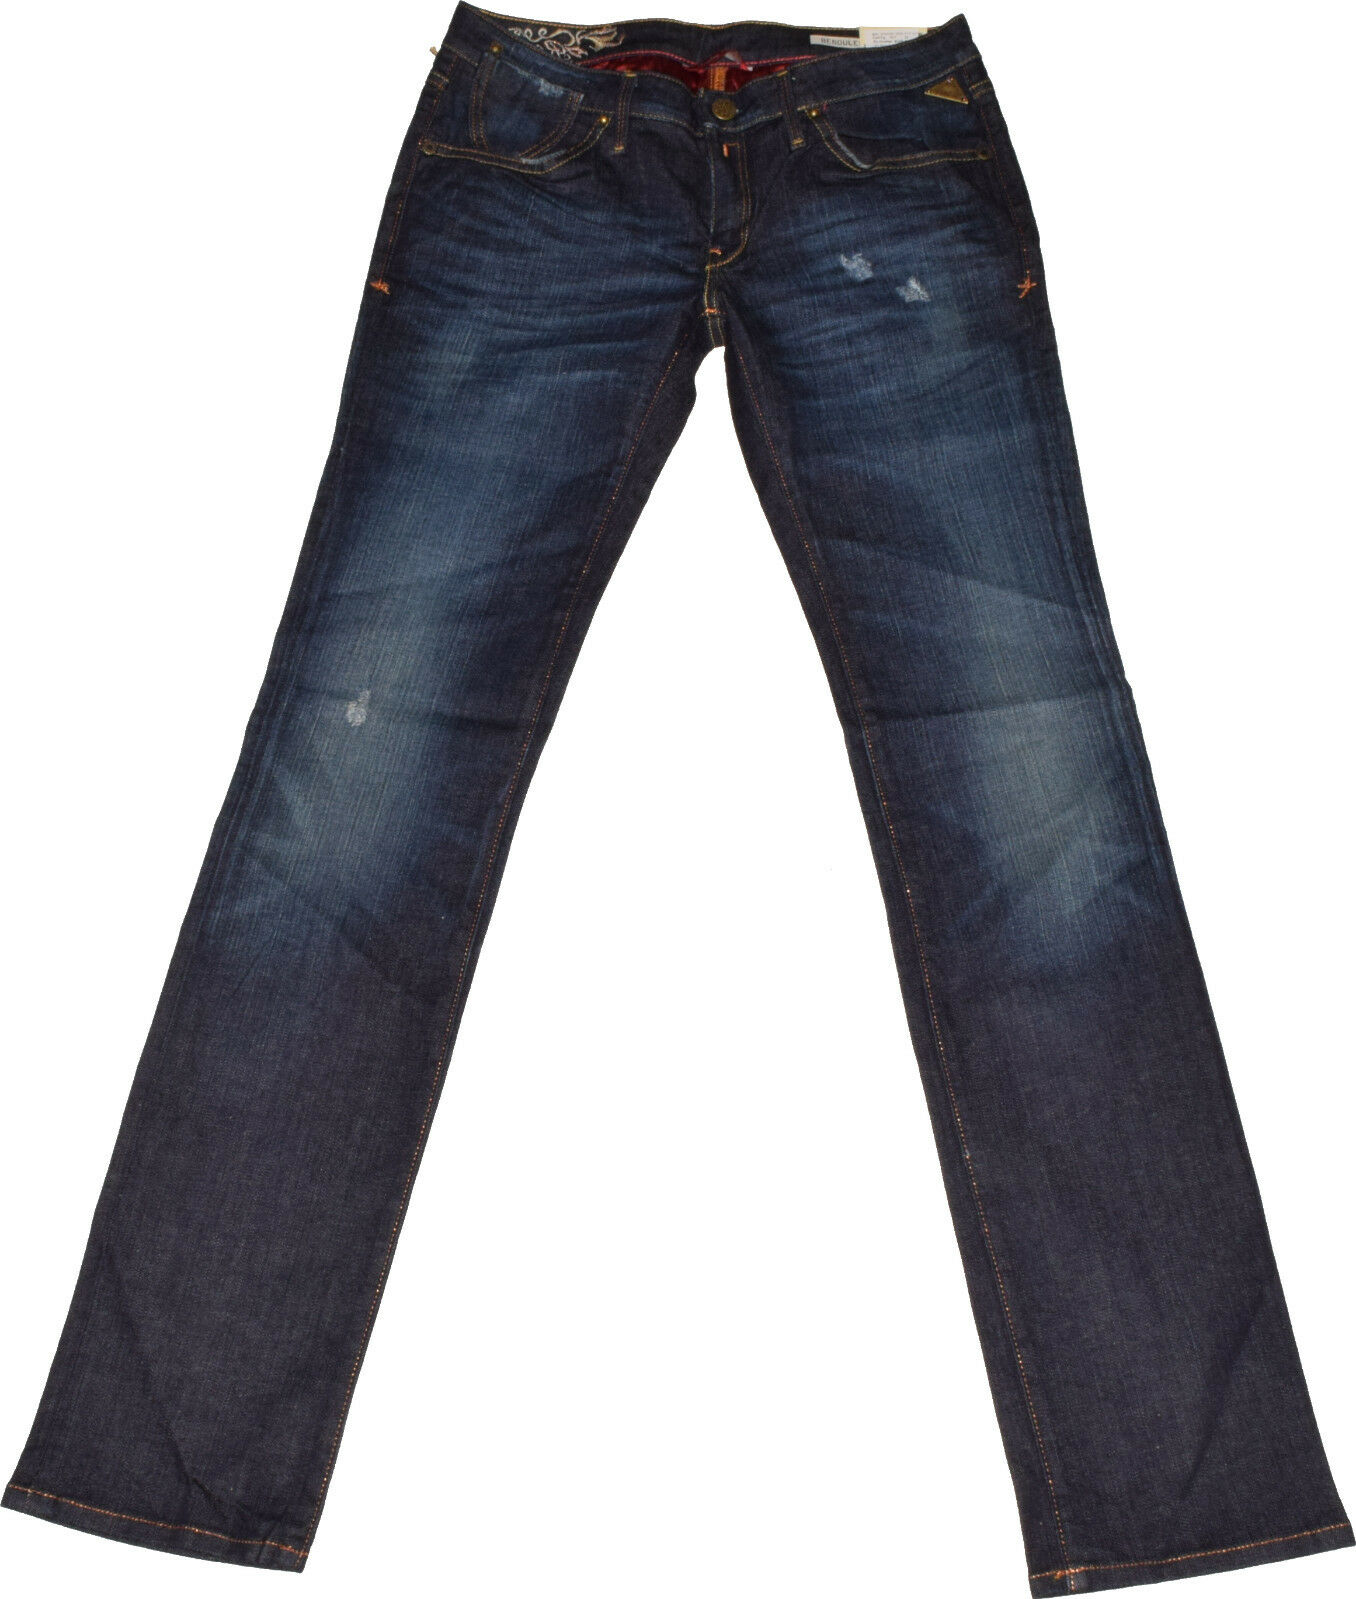 Replay Benoules  W 463B  Jeans  W30 L34  Stretch  Used Look  NEU